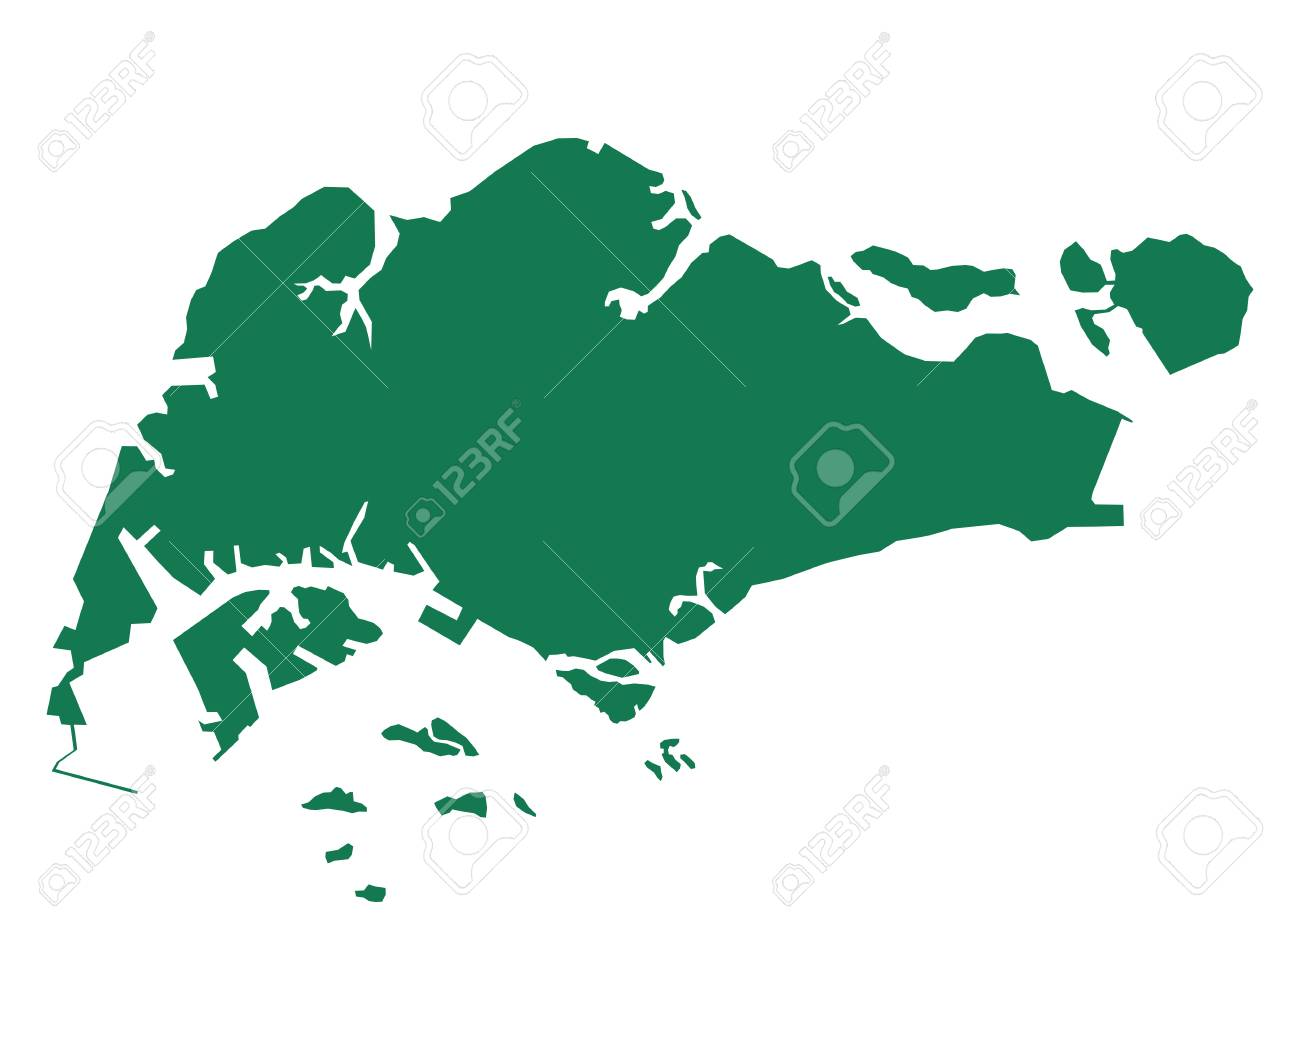 Map Of Singapore Royalty Free Cliparts, Vectors, And Stock ...